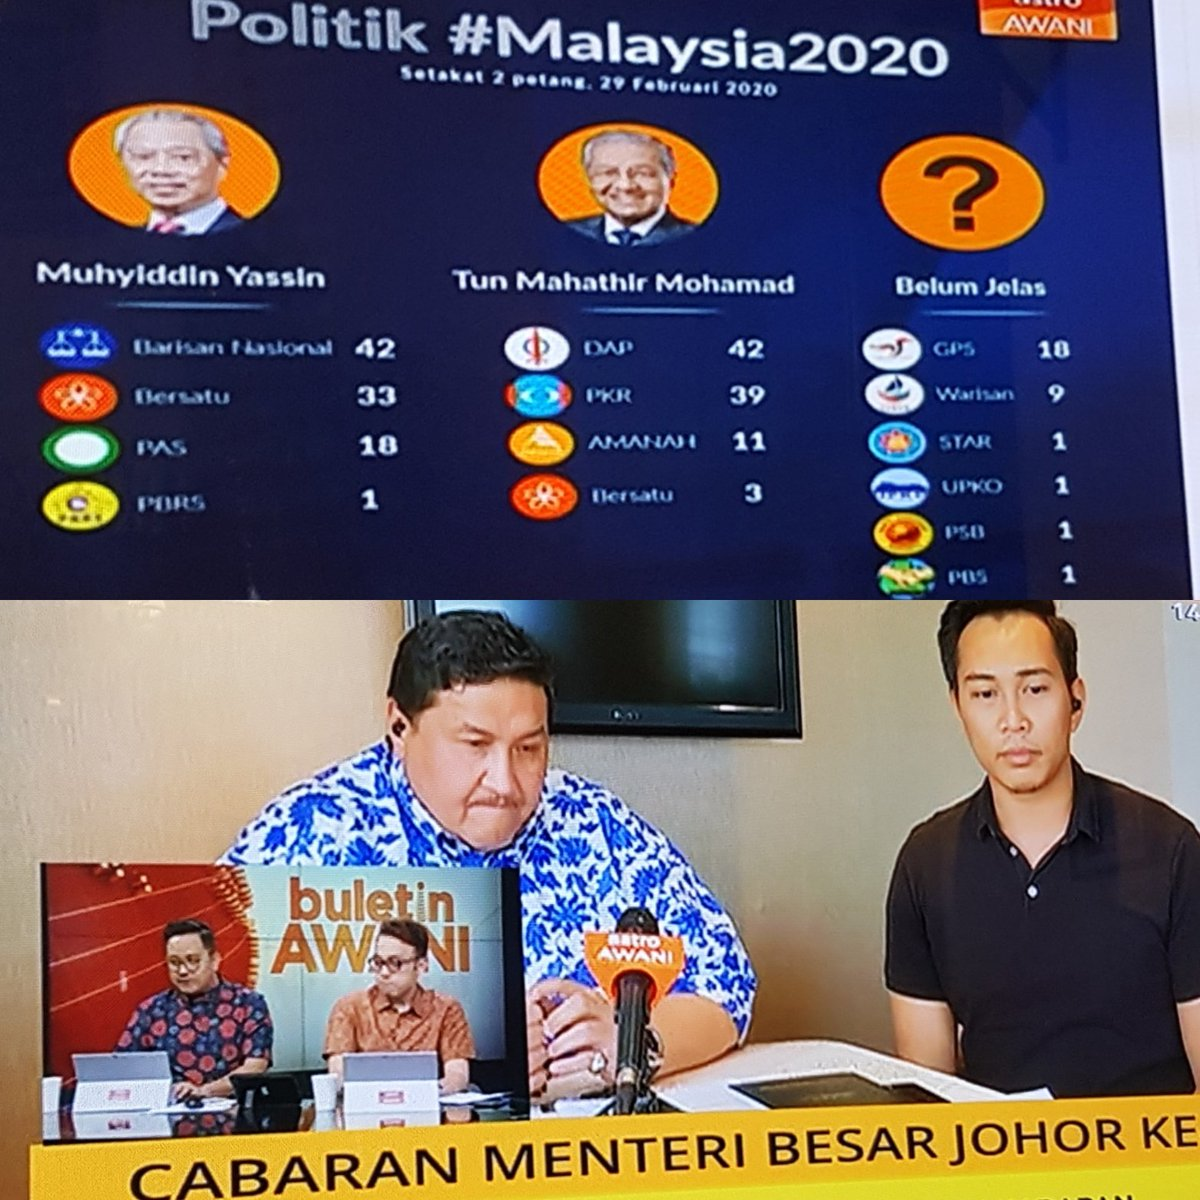 #breakingnews While analysing battle for #putrajaya & #johor @501Awani takes in YAB #CM #Sarawak indication of still with declared support for Tun @chedetofficial but any move to work with @dapmalaysia to be decided by #GPS leaders at meeting in #KL tomorrow #live #Malaysia2020pic.twitter.com/ieLoenxWvI